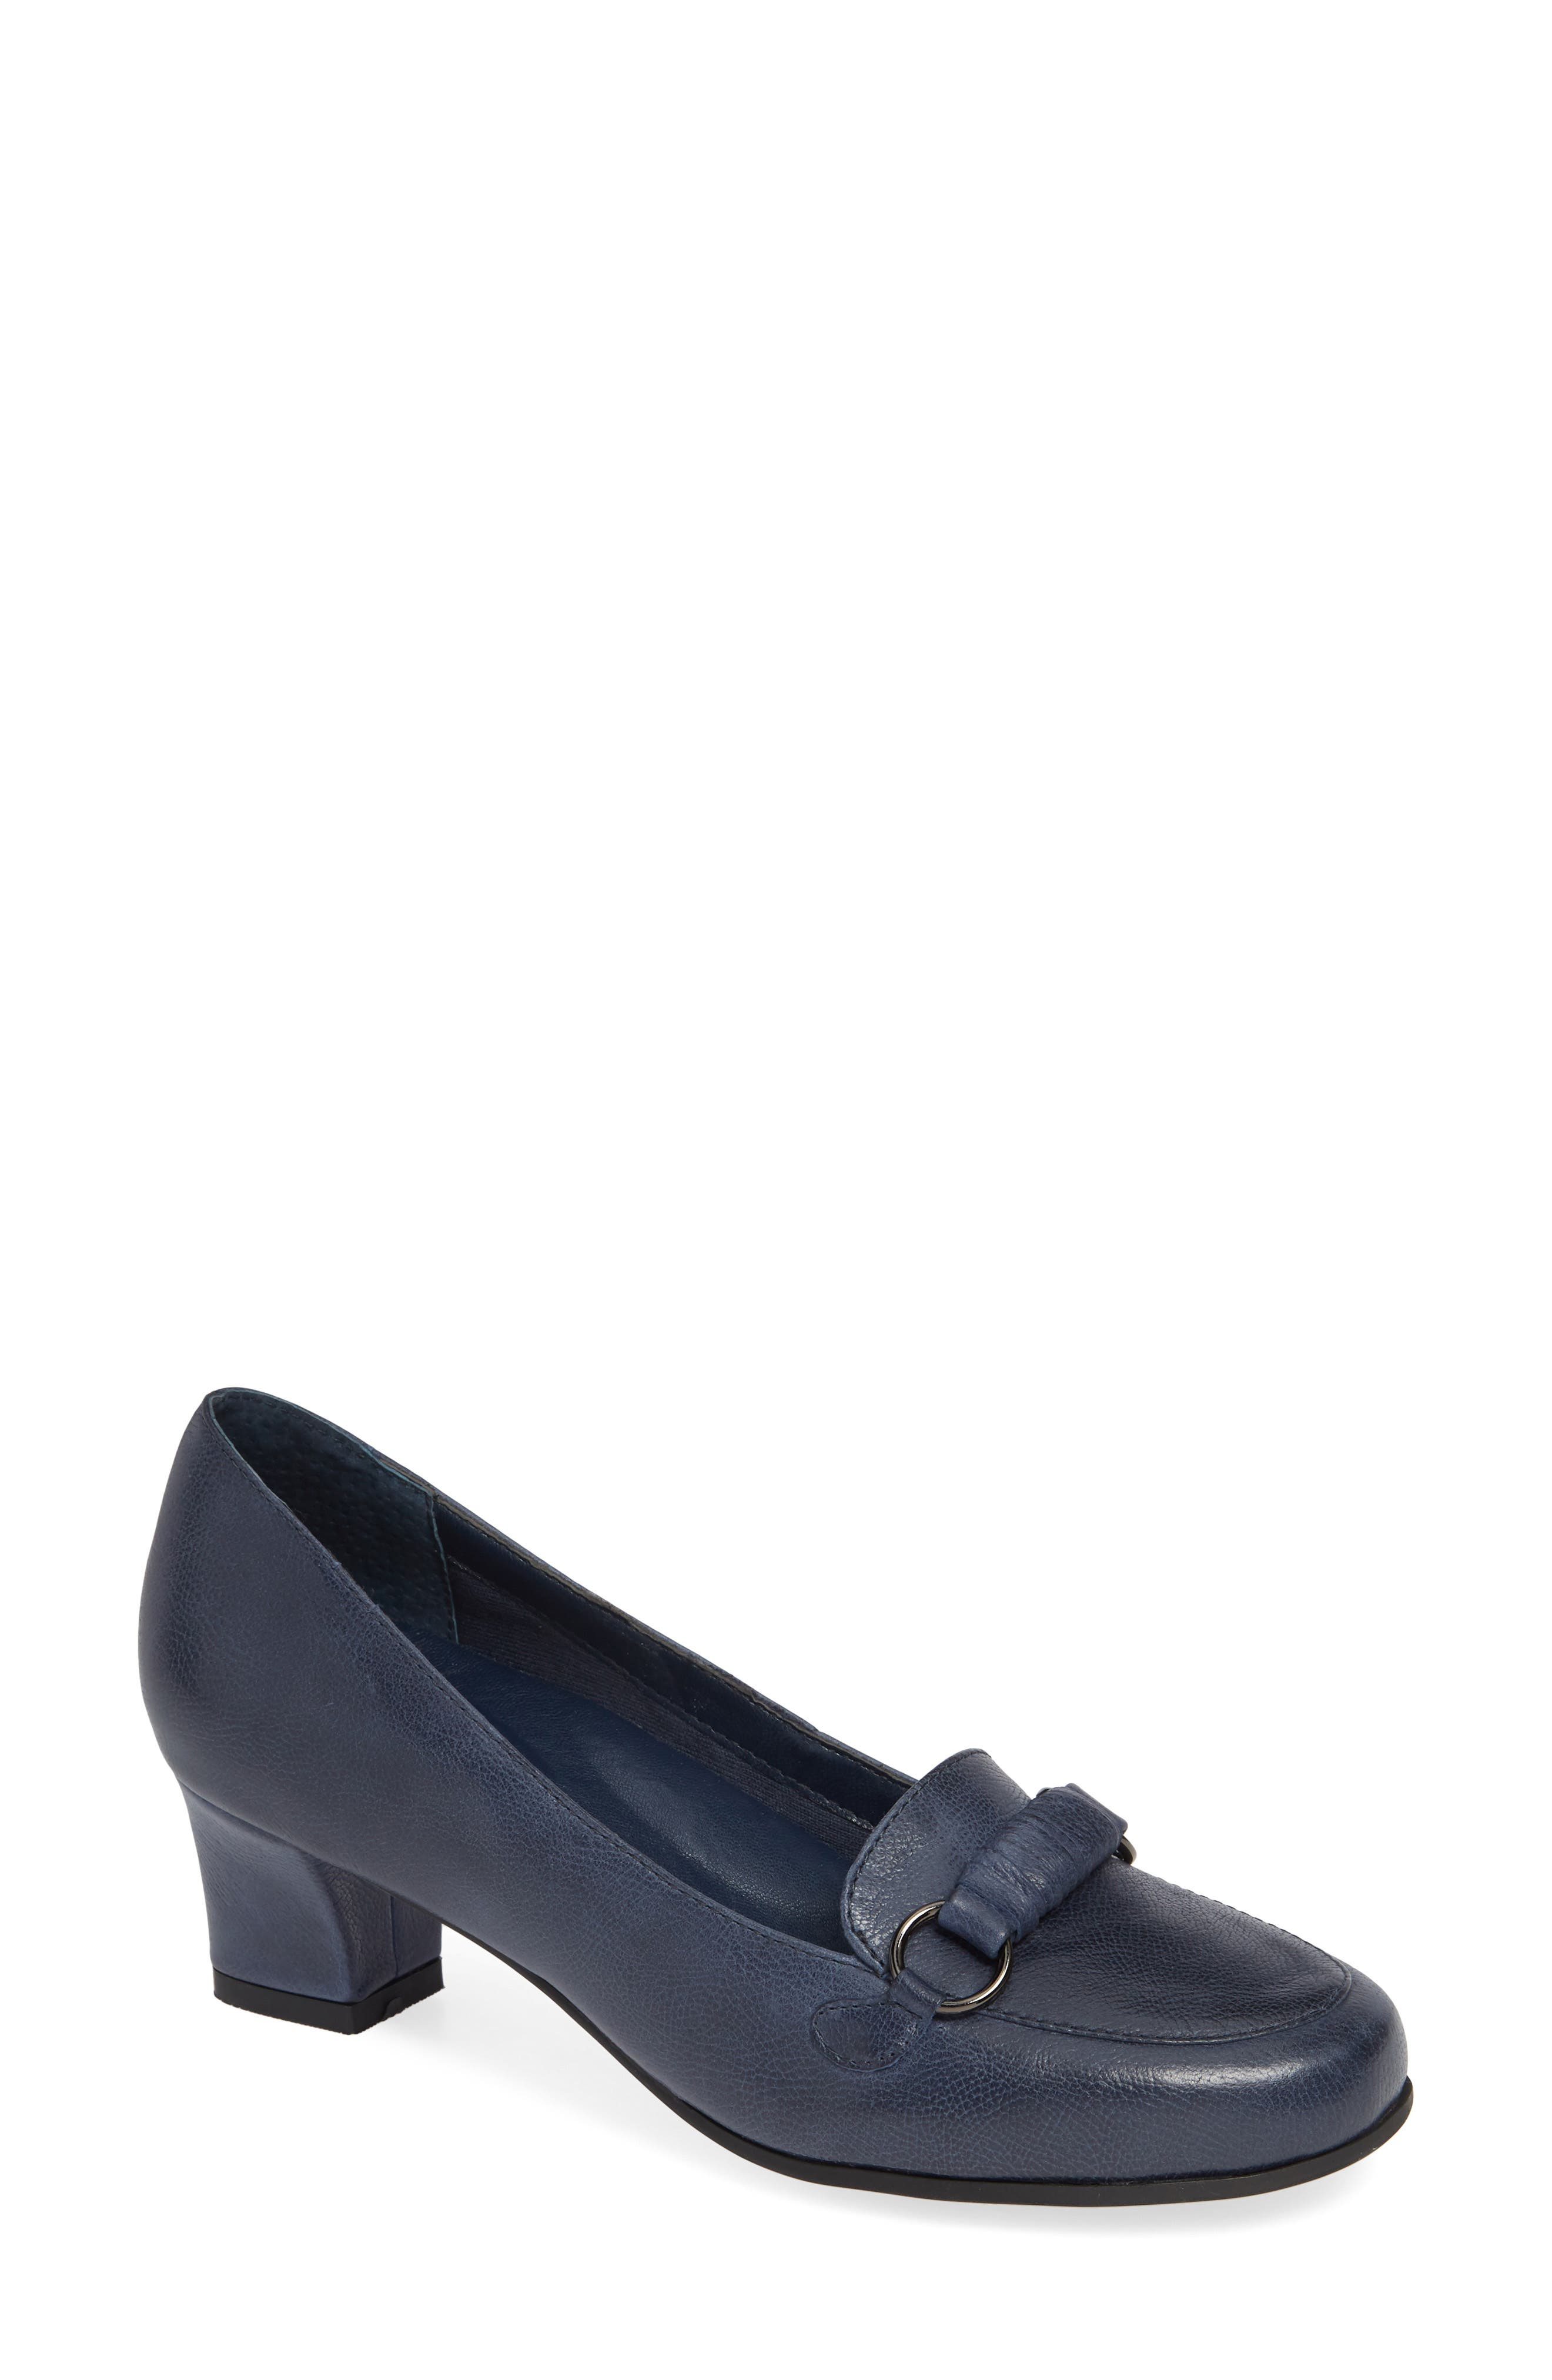 David Tate Perky Loafer Pump, Blue